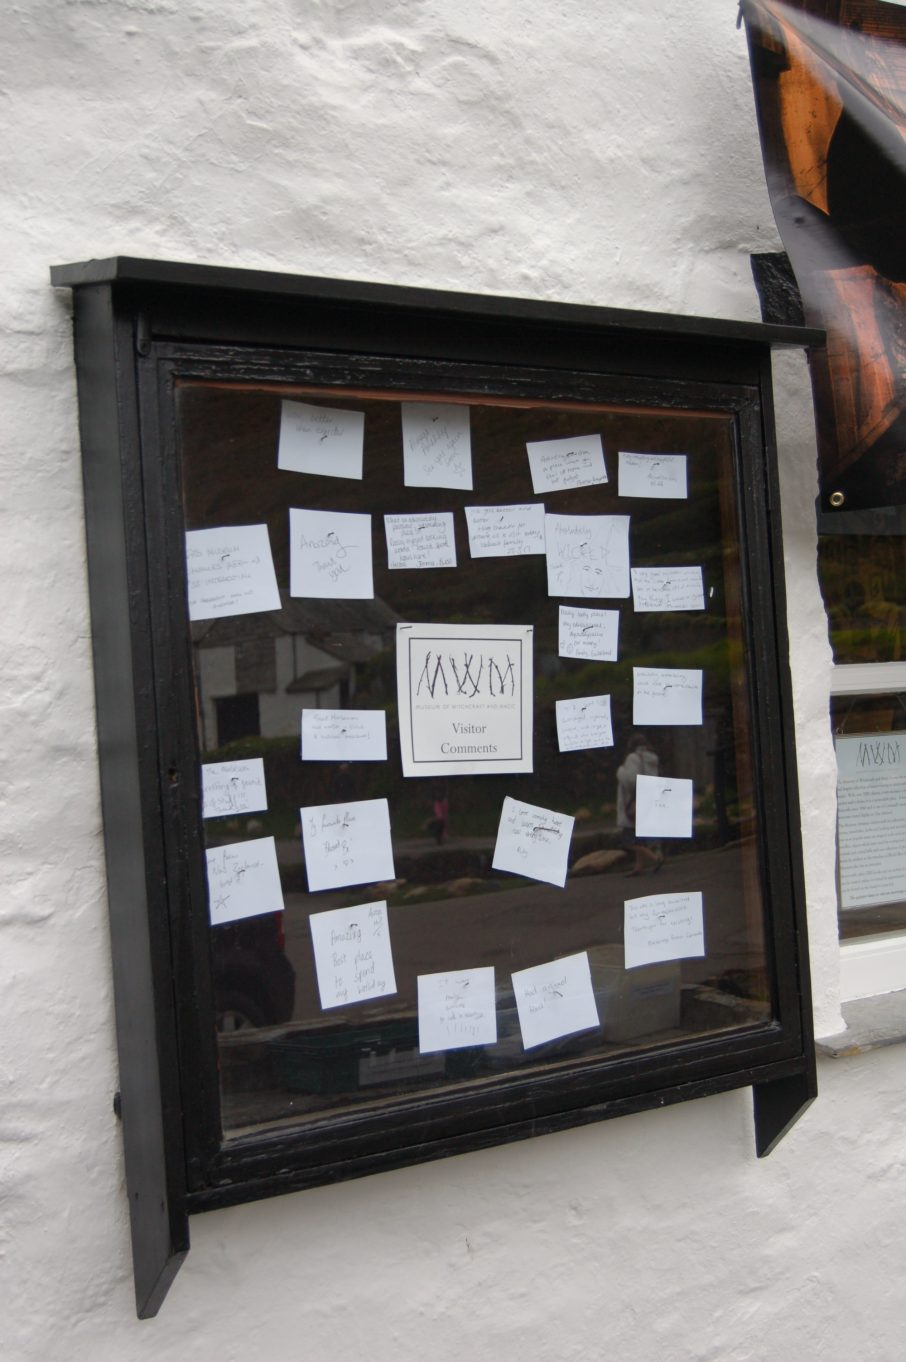 New visitors comments outside the Museum